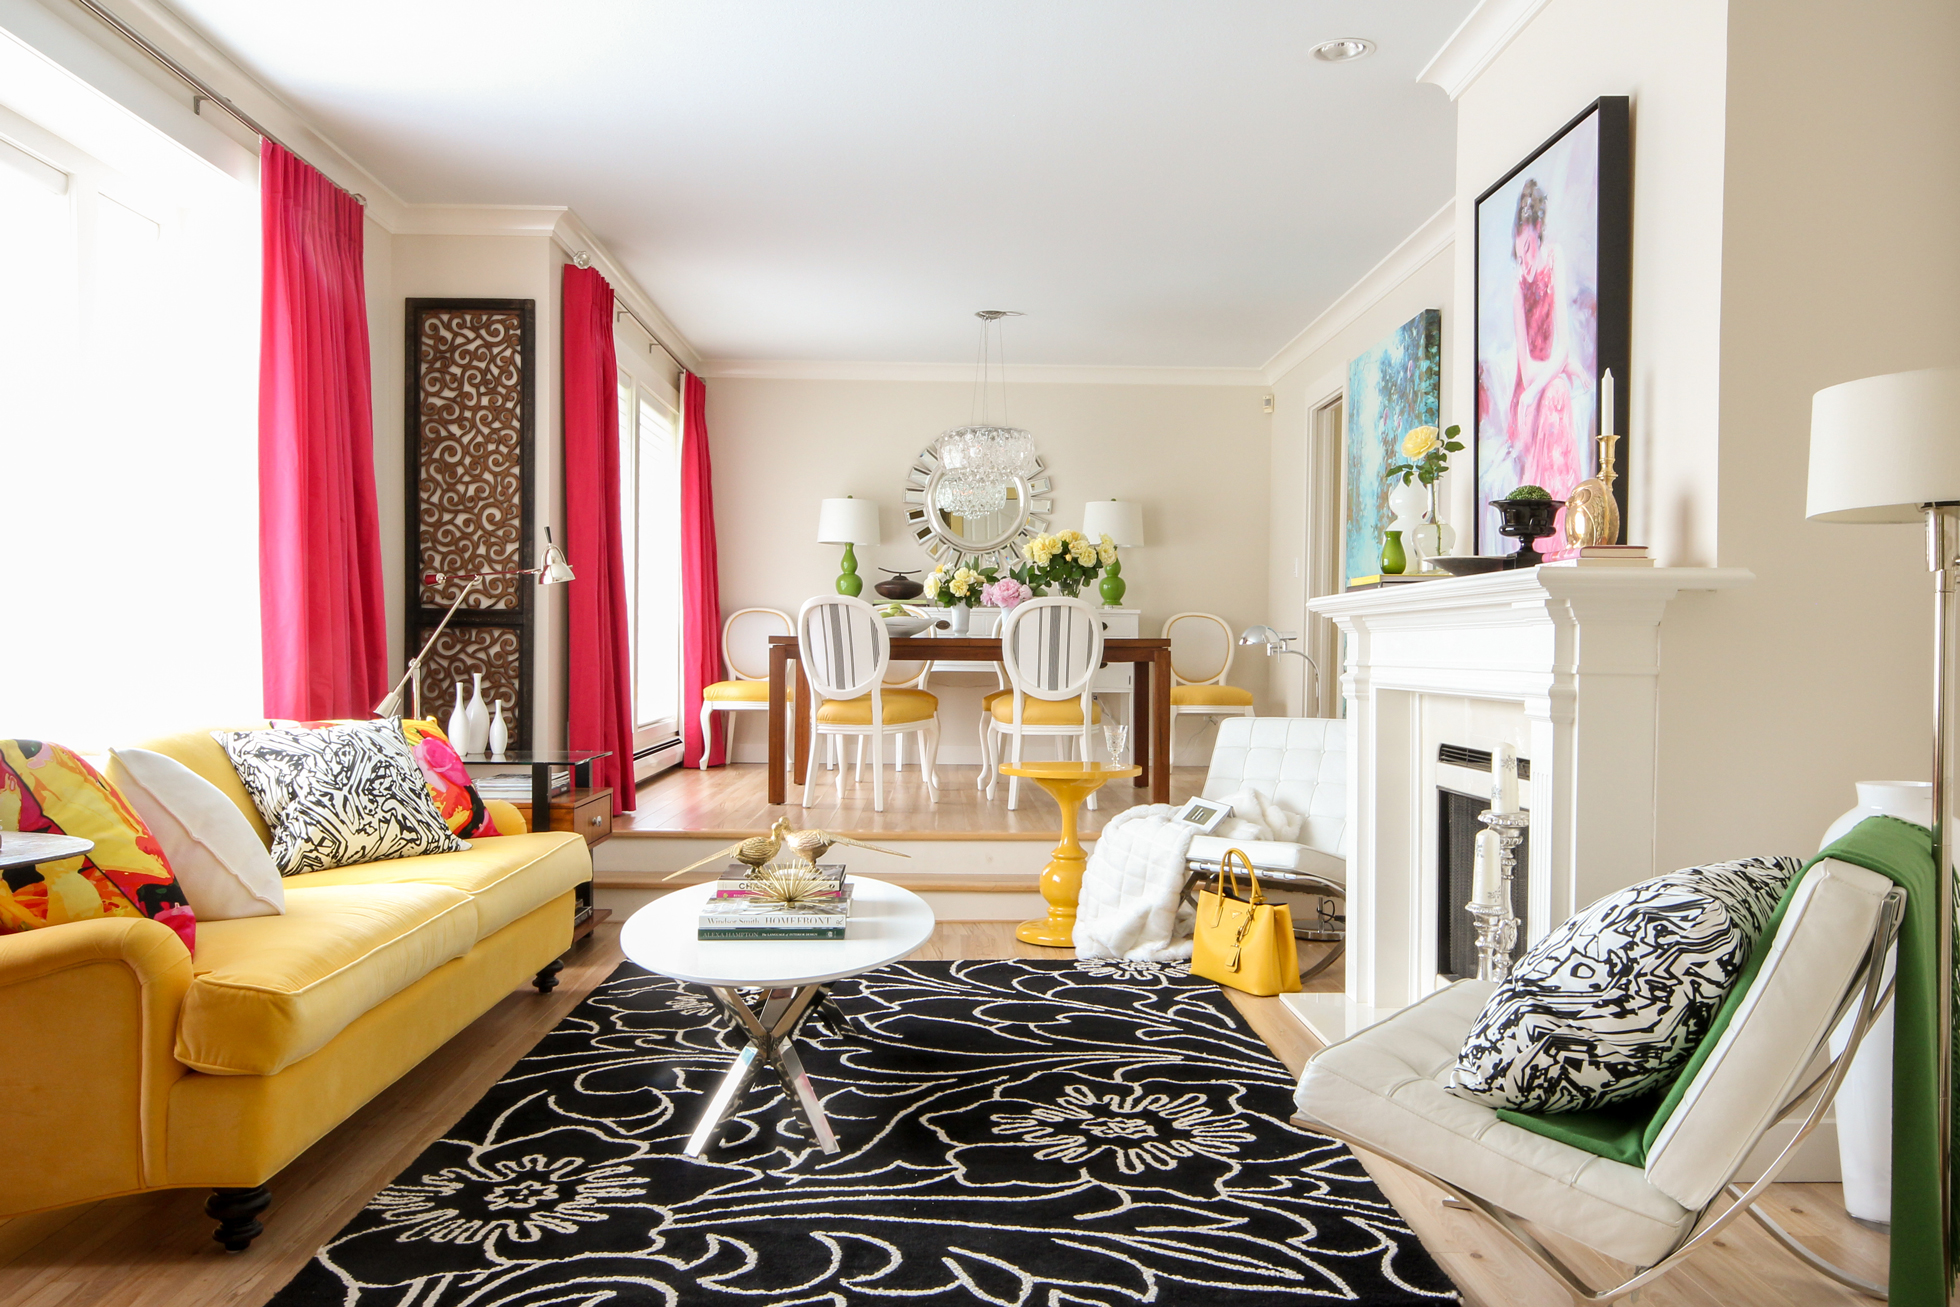 A bright living room with pink shades, yellow furniture